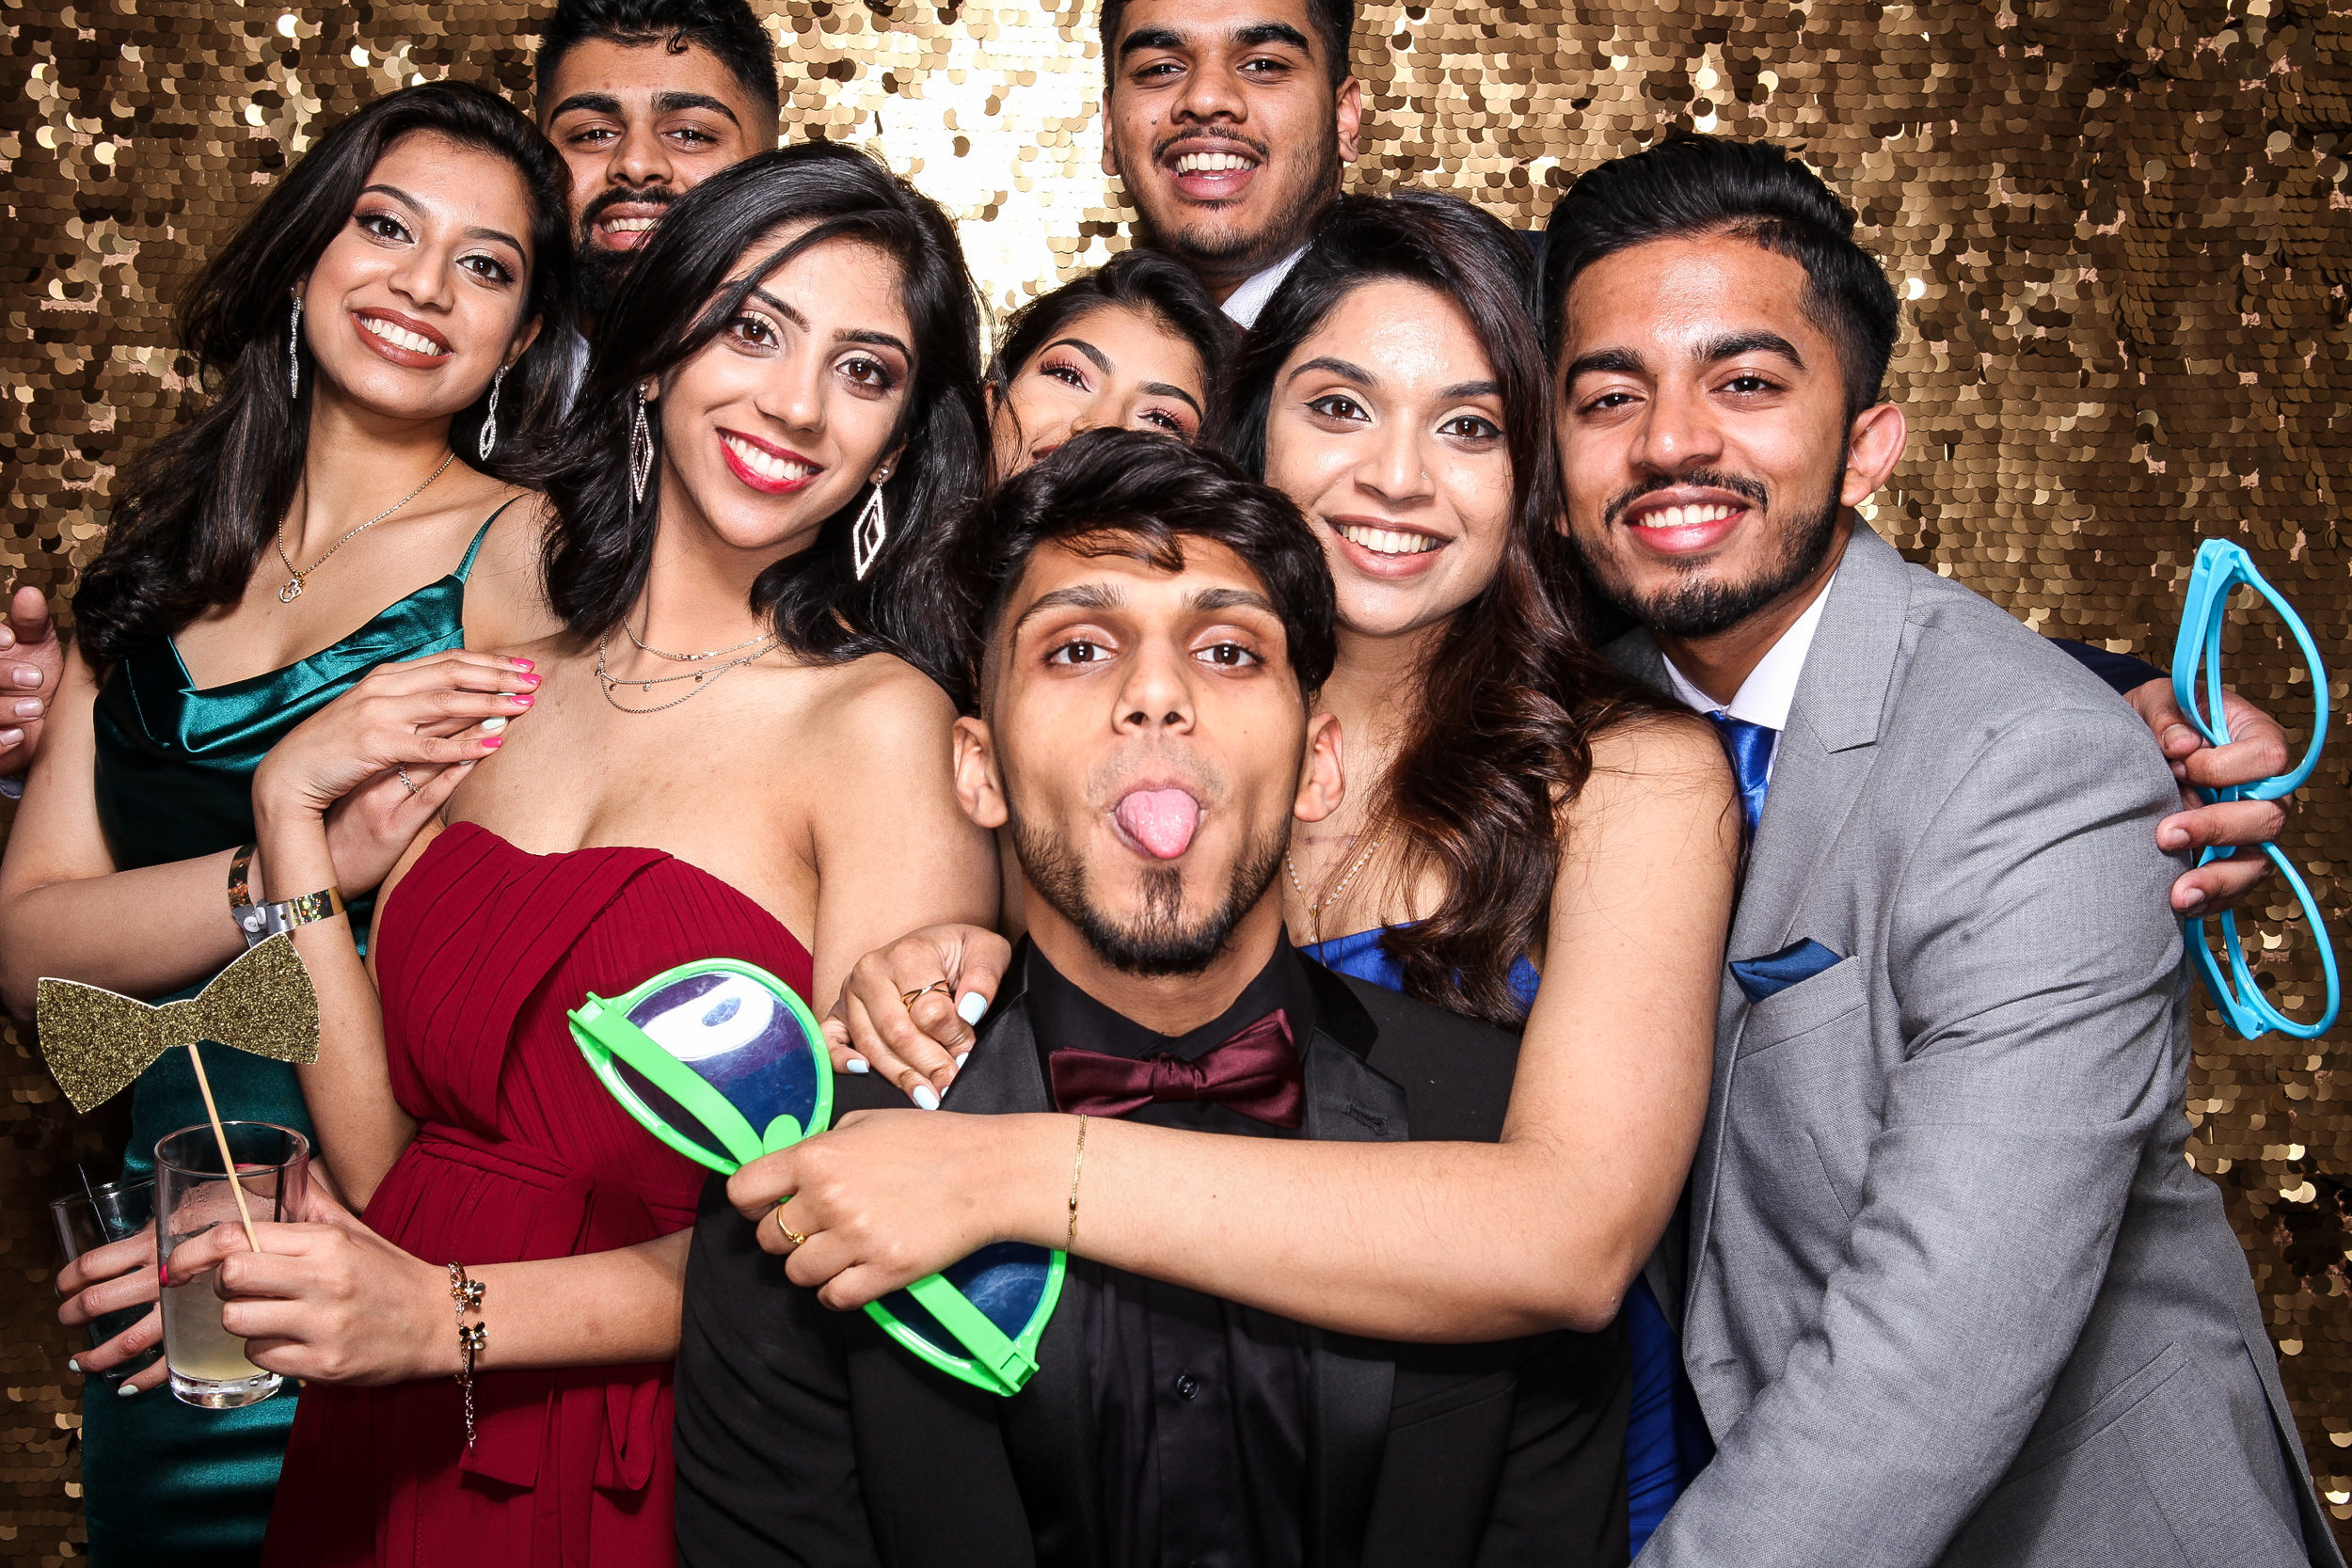 20190503_Adelphi_Senior_Formal-262.jpg